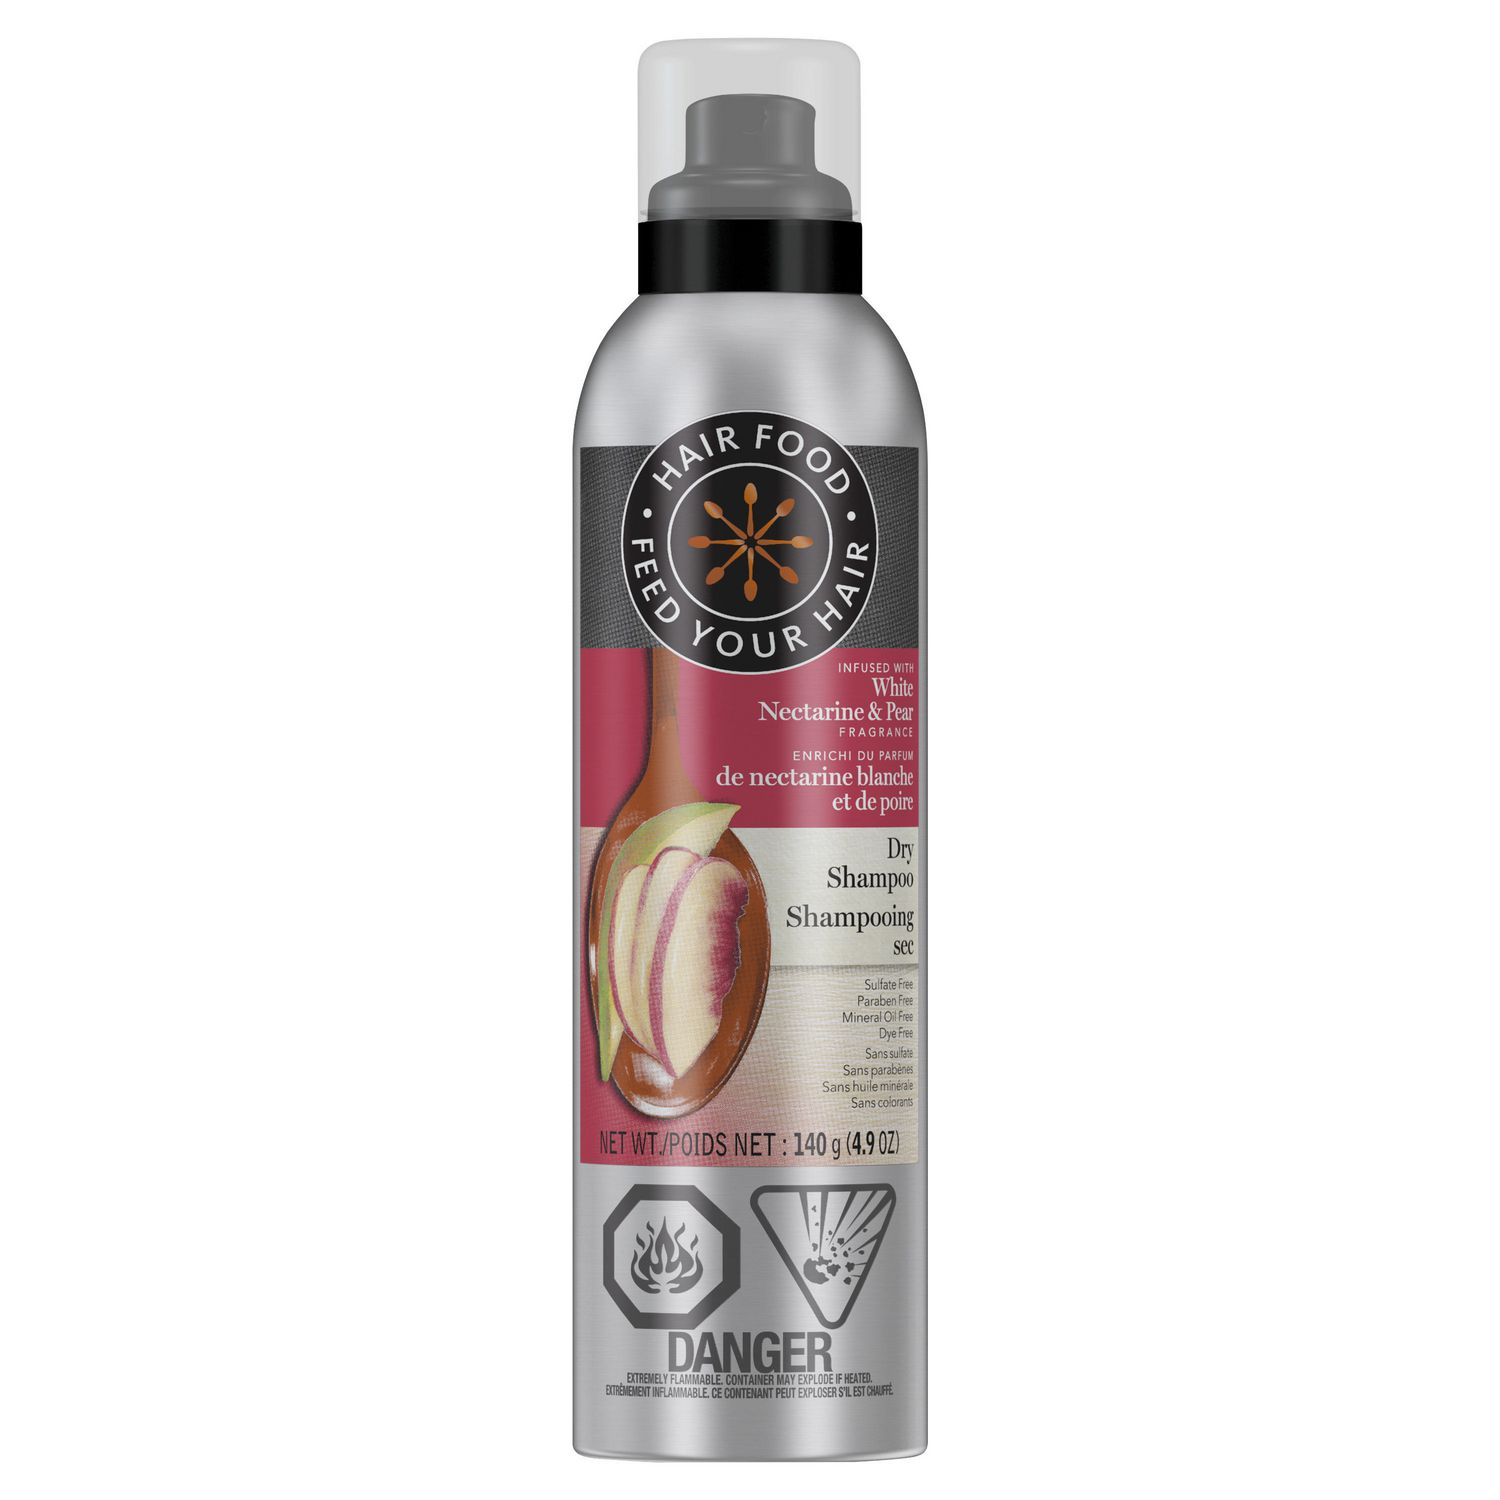 Spray can of Hair Food sulfate-free colour protect dry shampoo - best dry shampoo for red hair